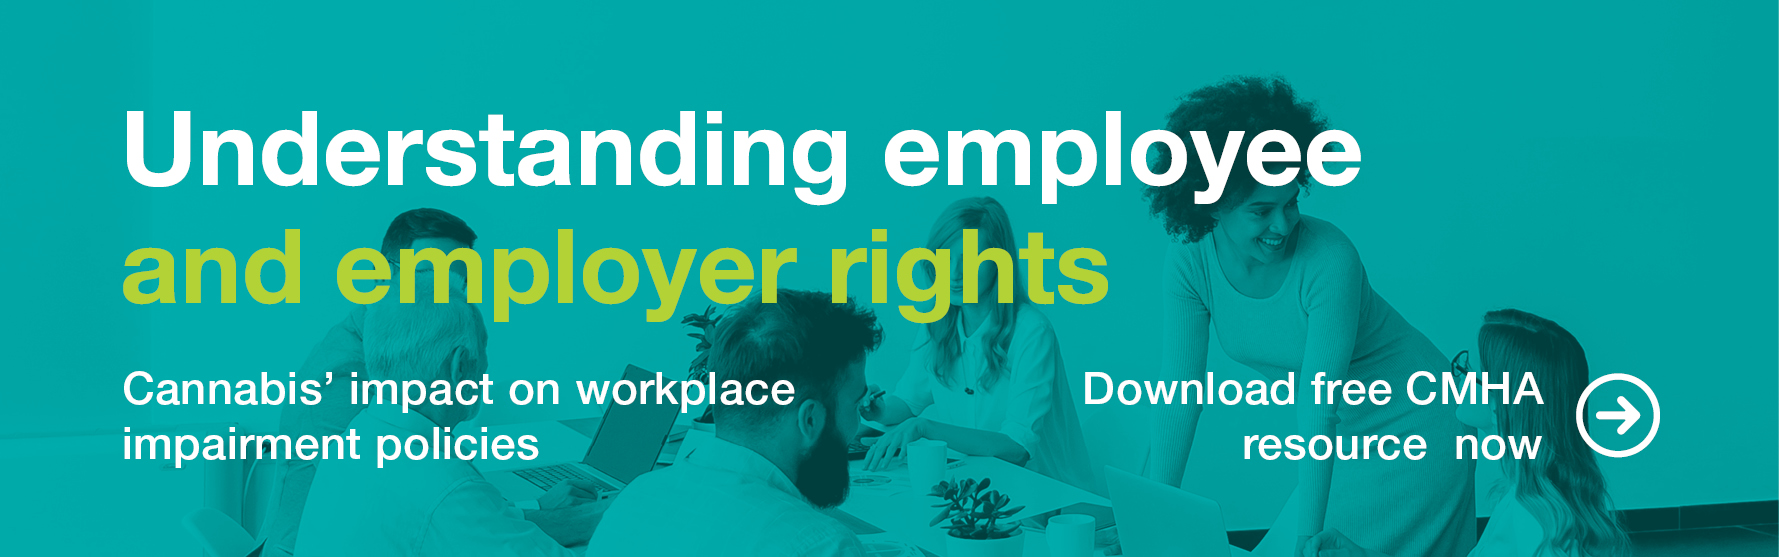 New, free CMHA resource helps employers  update impairment policies post-cannabis legalization